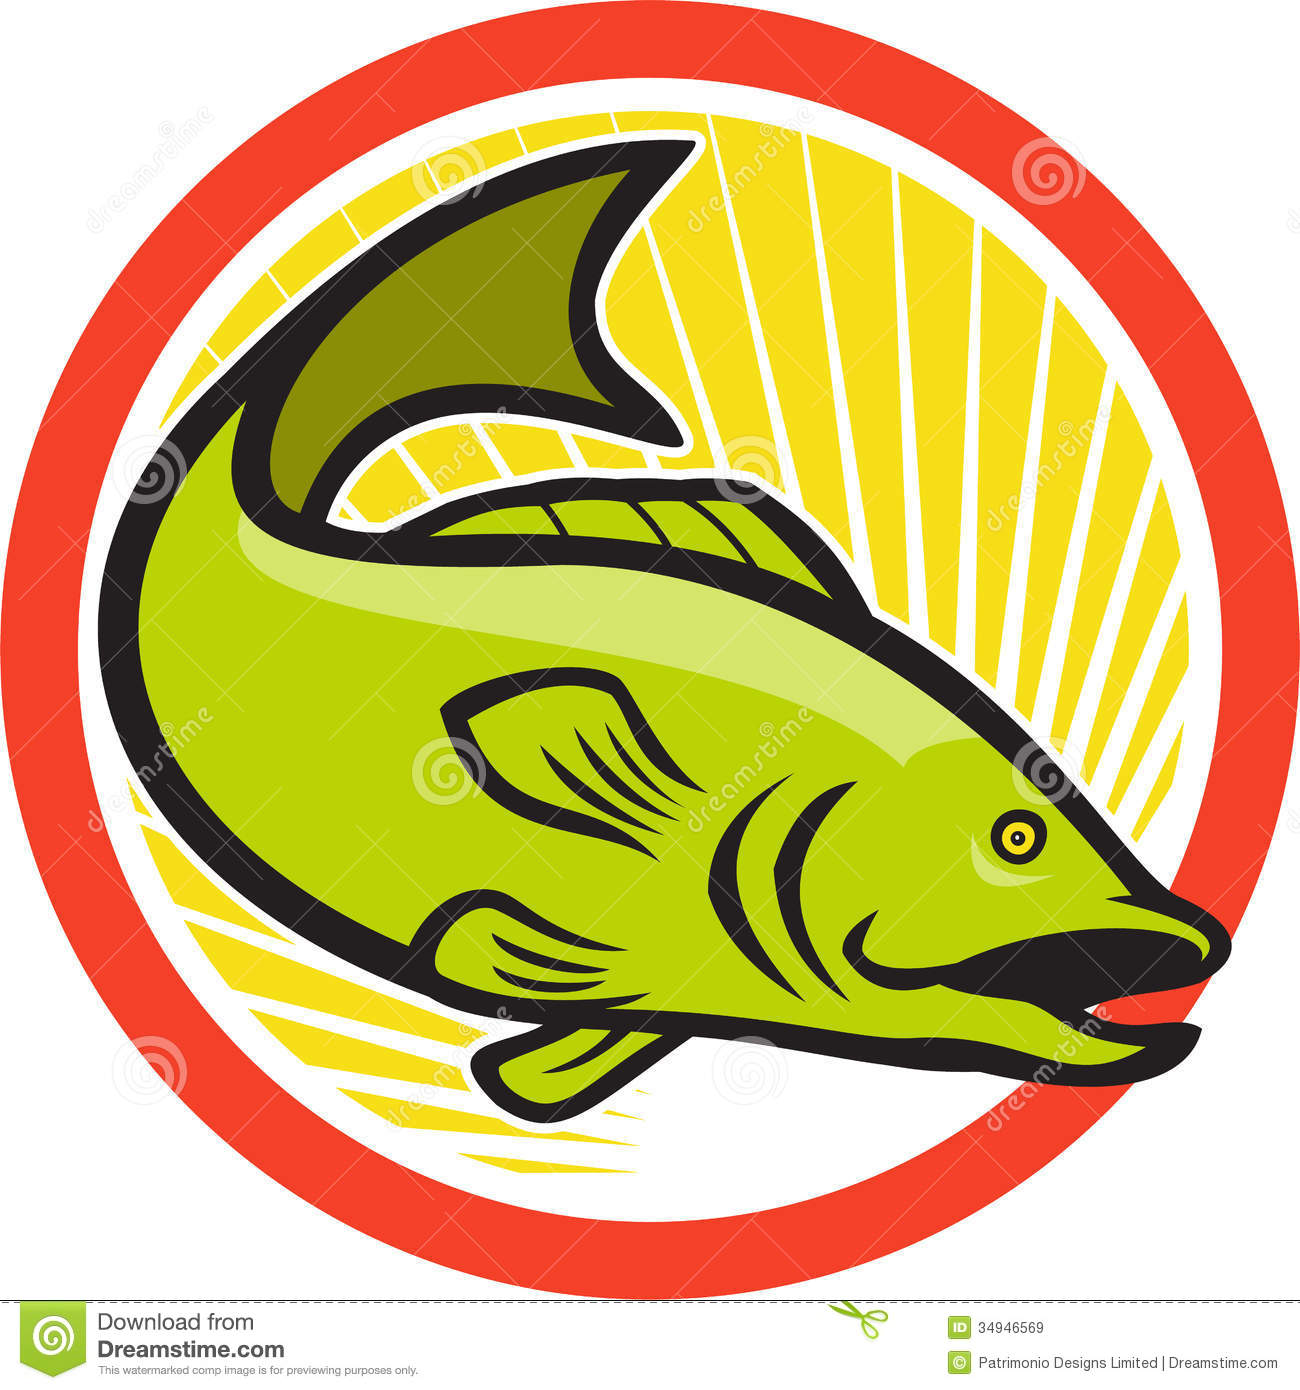 Bass clipart fishing competition. Jumping fish clip art